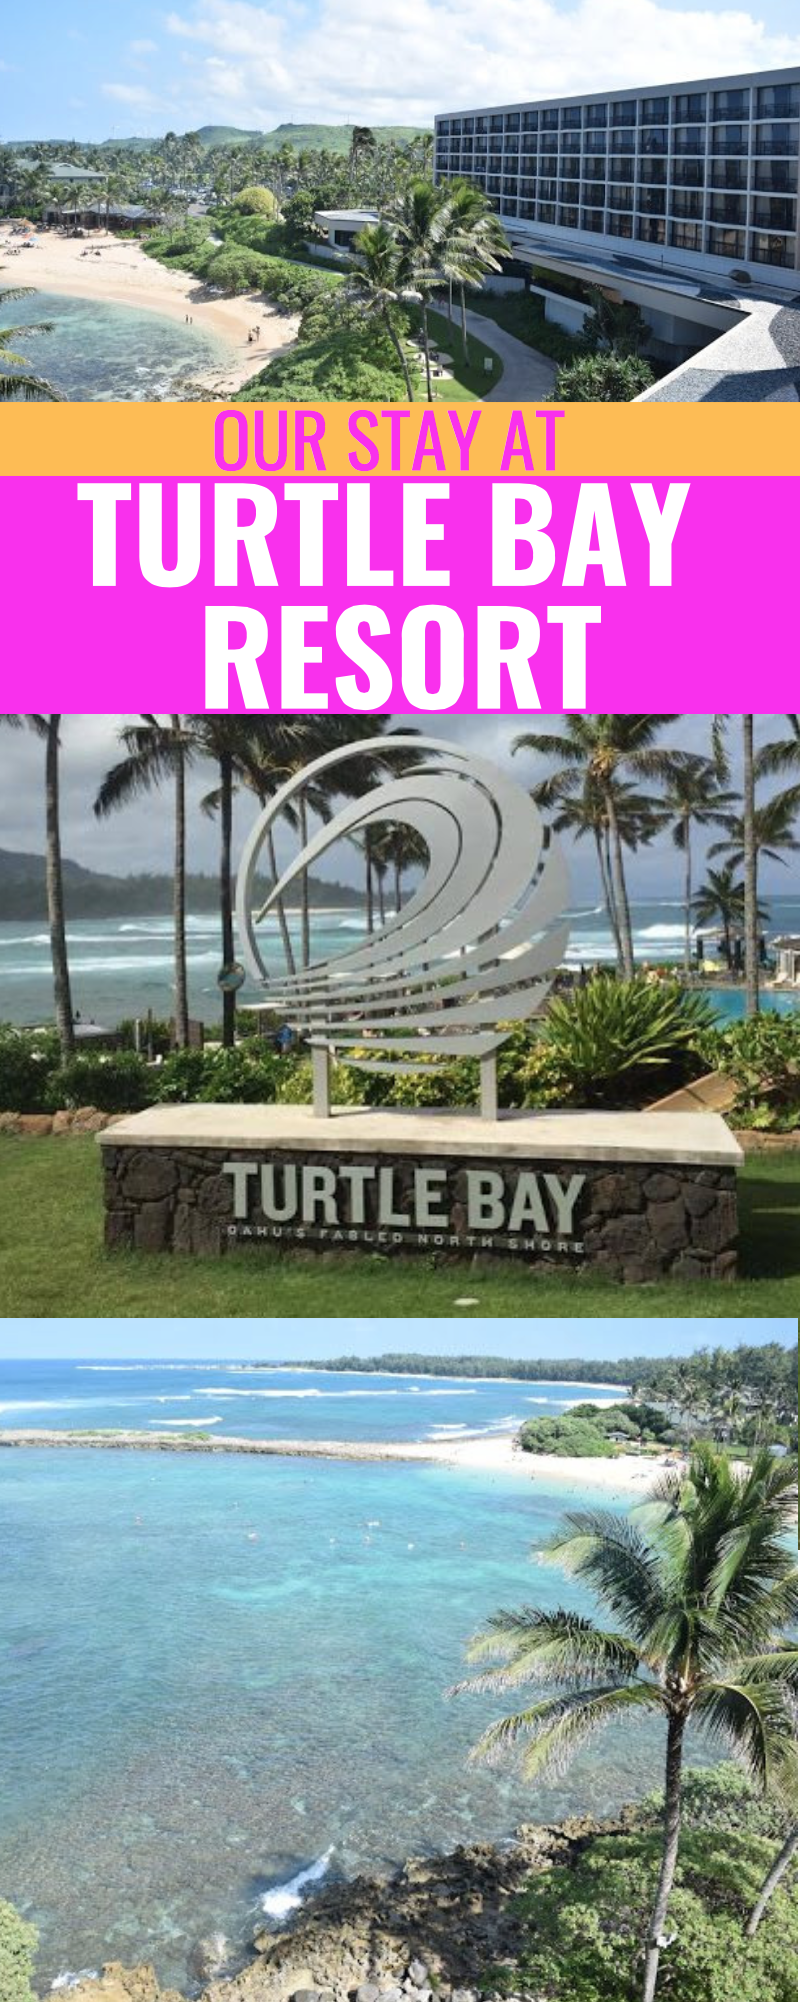 Our Stay At Turtle Bay Resort On Oahu - Turtle Resort Hawaii - The Turtle Bay Resort - Turtle Bay Resort Hawaii - Hawaii Hotels - Oahu Hotels - Turtle Bay On Oahu - North Shore Oahu Hotels - Communikait by Kait Hanson #oahu #hotels #hawaii #turtlebay